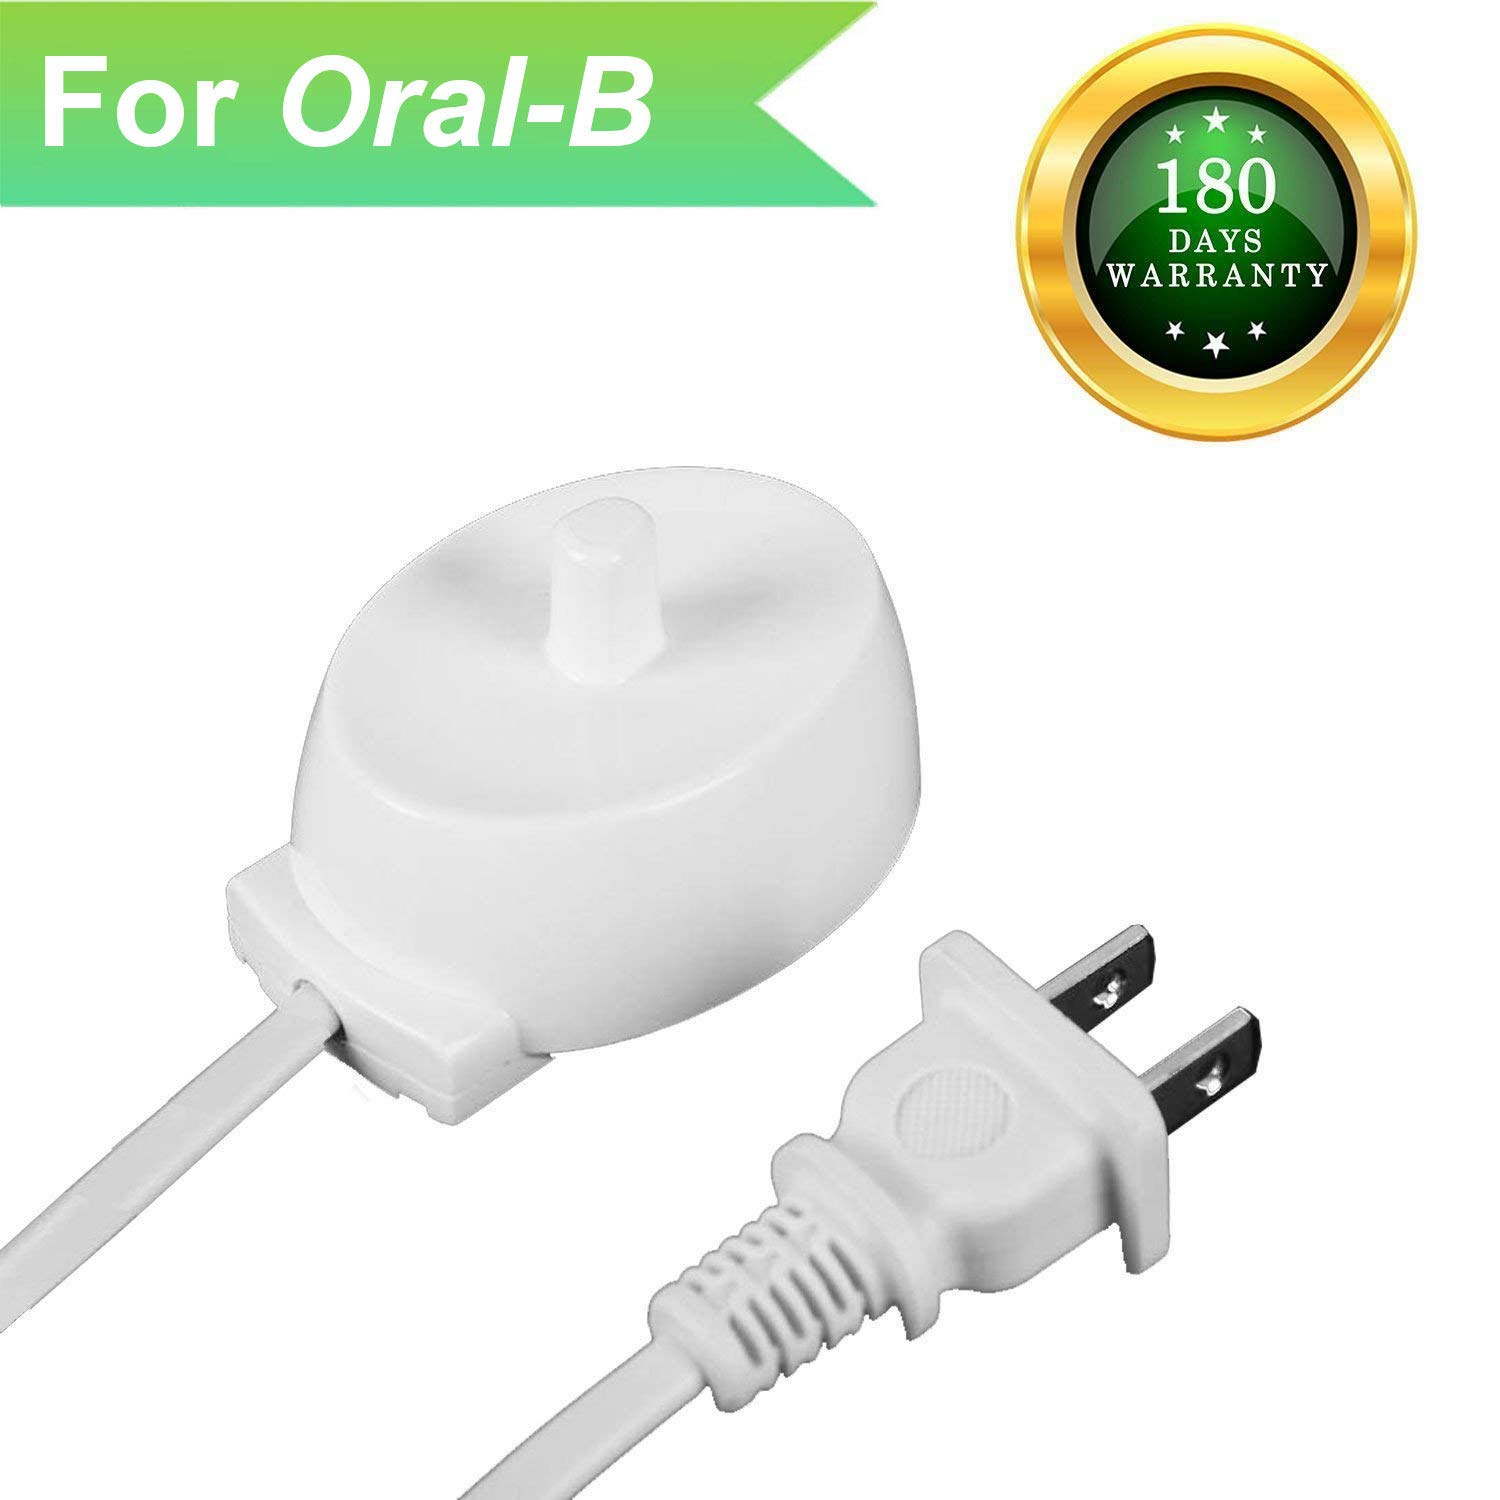 For Braun Oral B Electric Toothbrush Replacement Charger power cord supply Inductive Charging Base Model 3757 Portable Environmental ABS For Travel